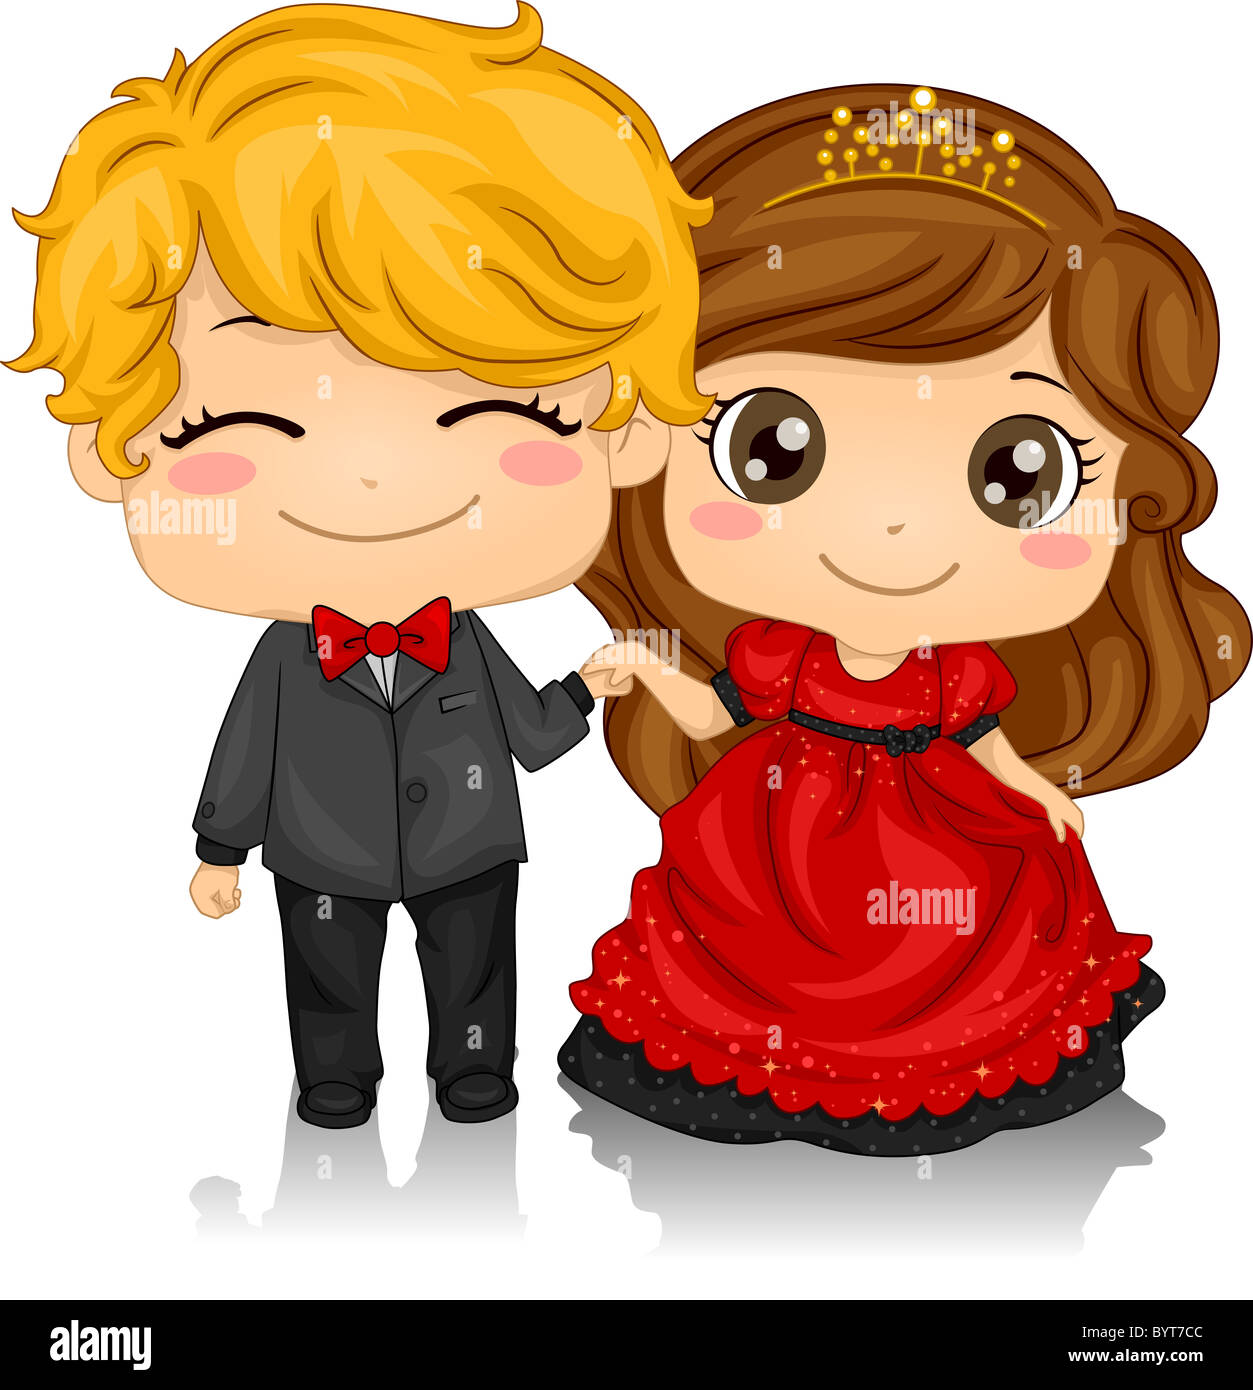 Illustration of a Couple Attending a Valentine Ball Stock Photo